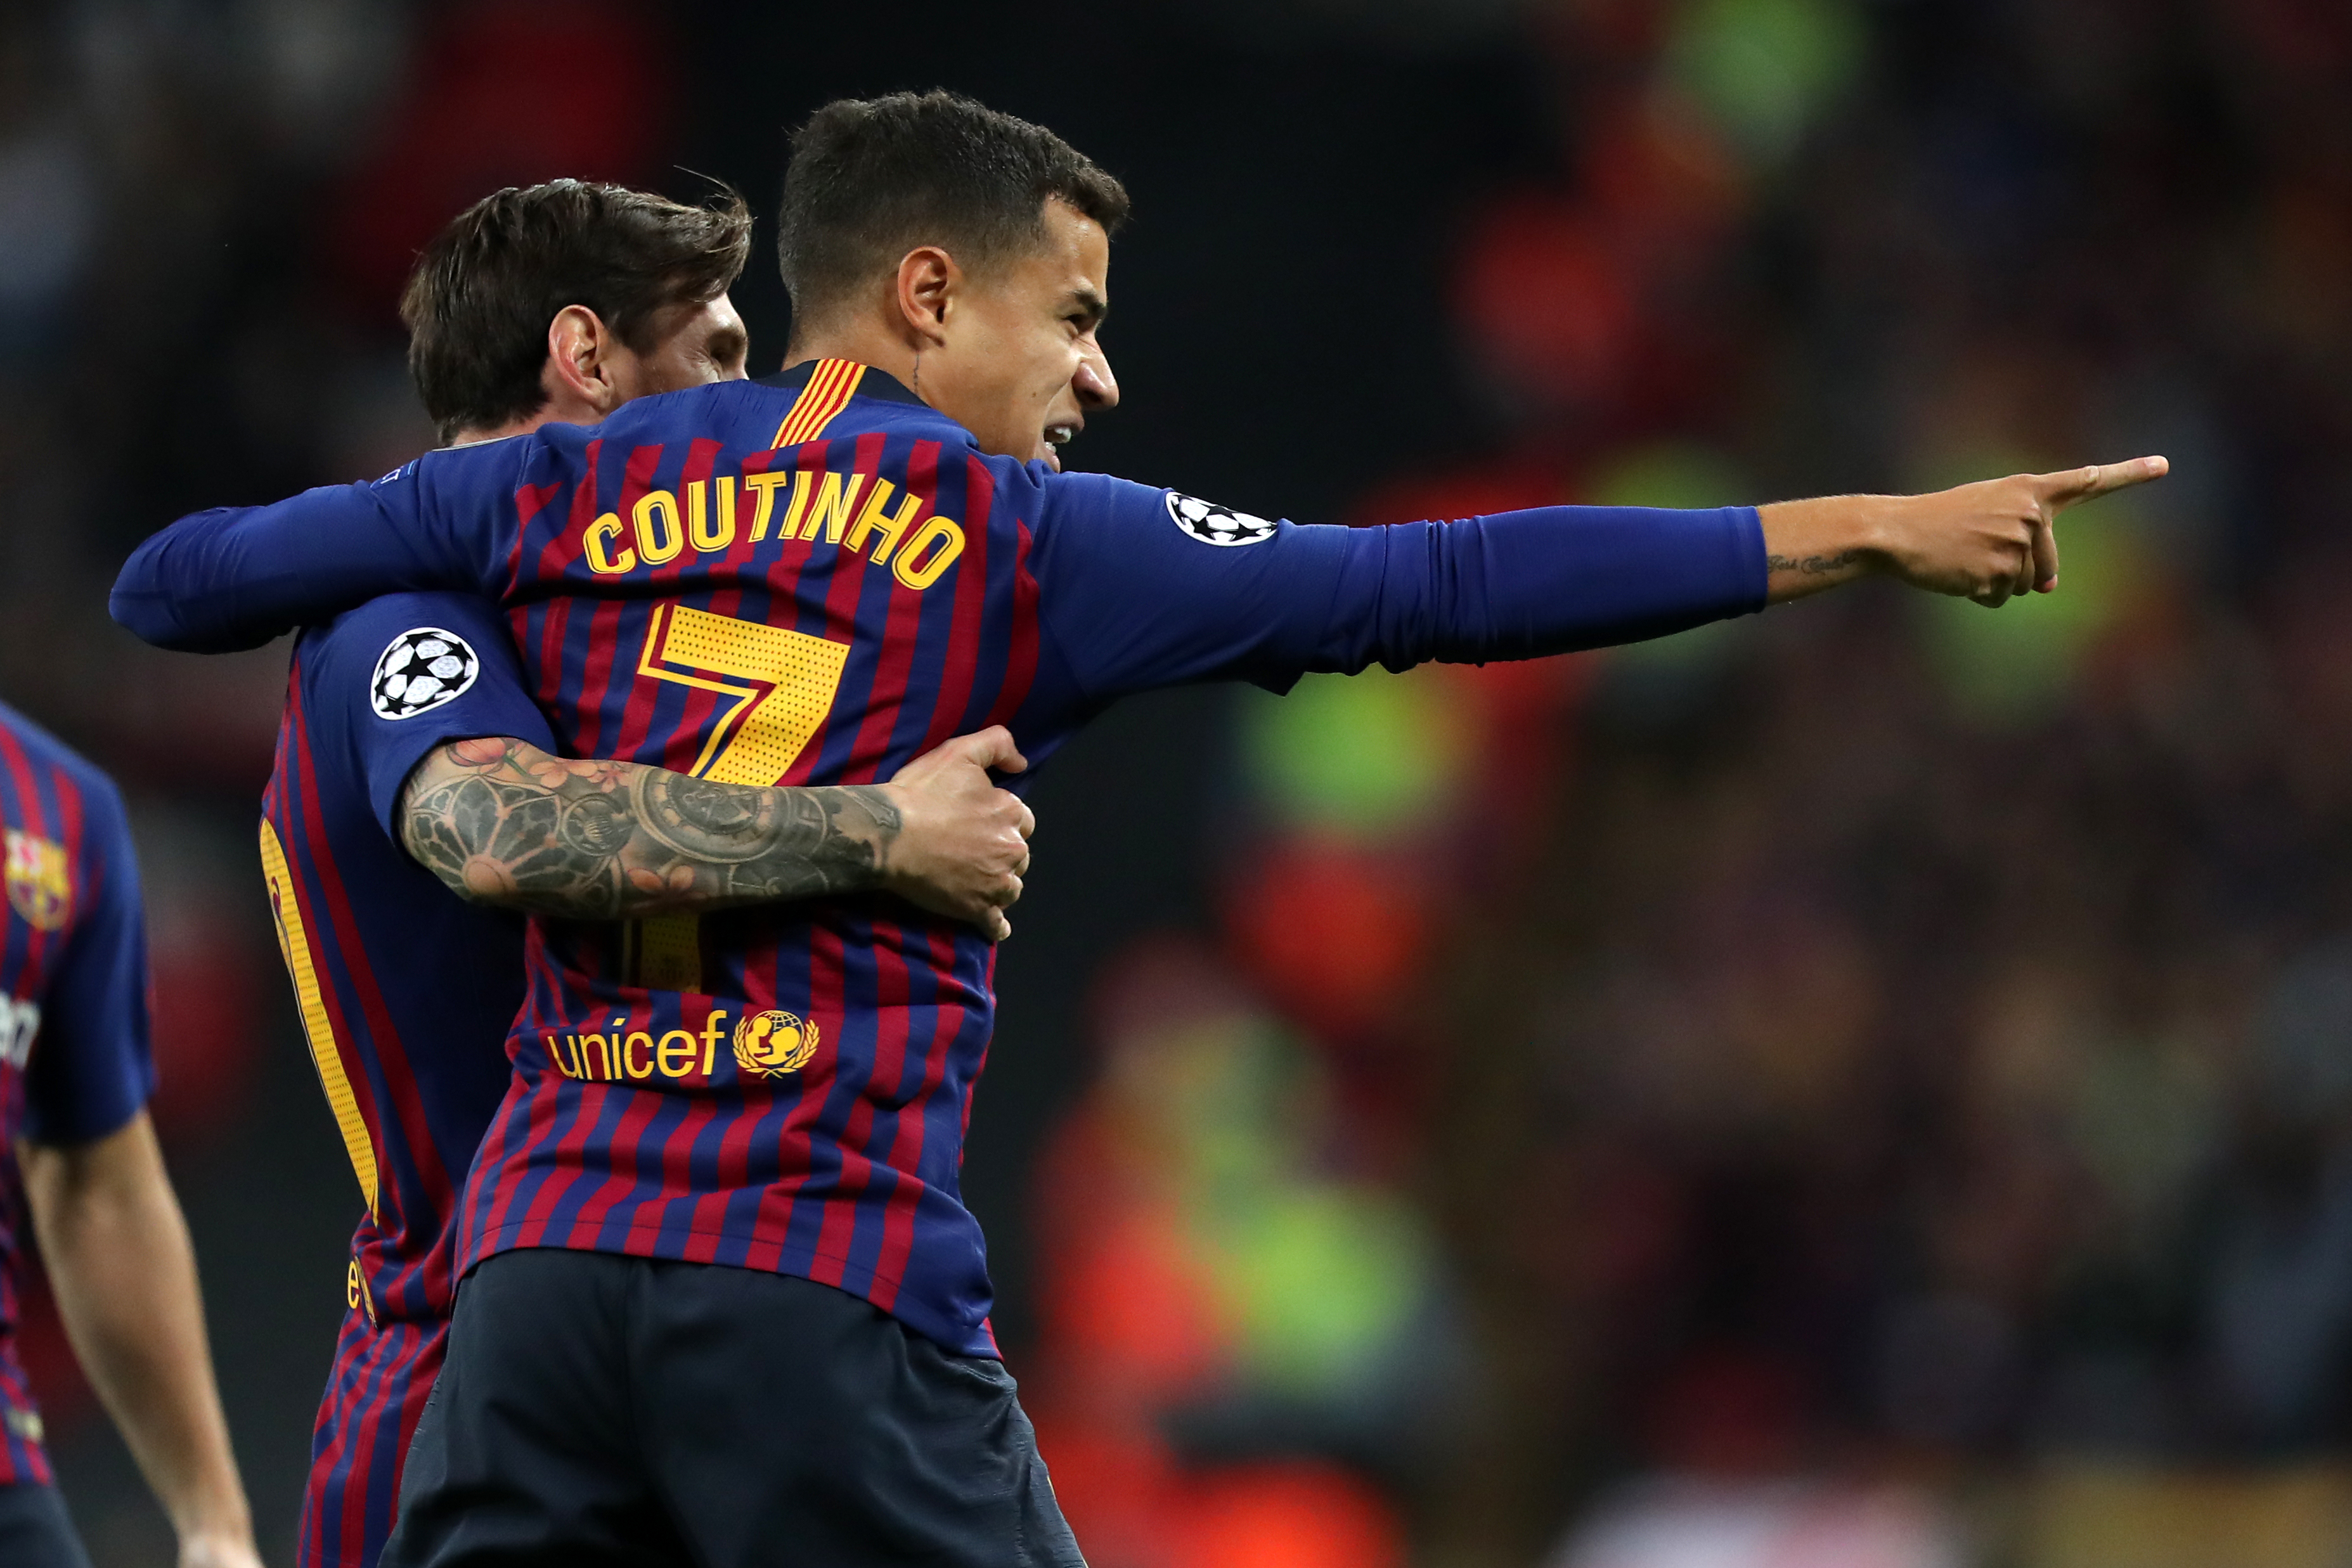 How Coutinho's arrival at Arsenal could affect Pepe, Lacazette and Xhaka